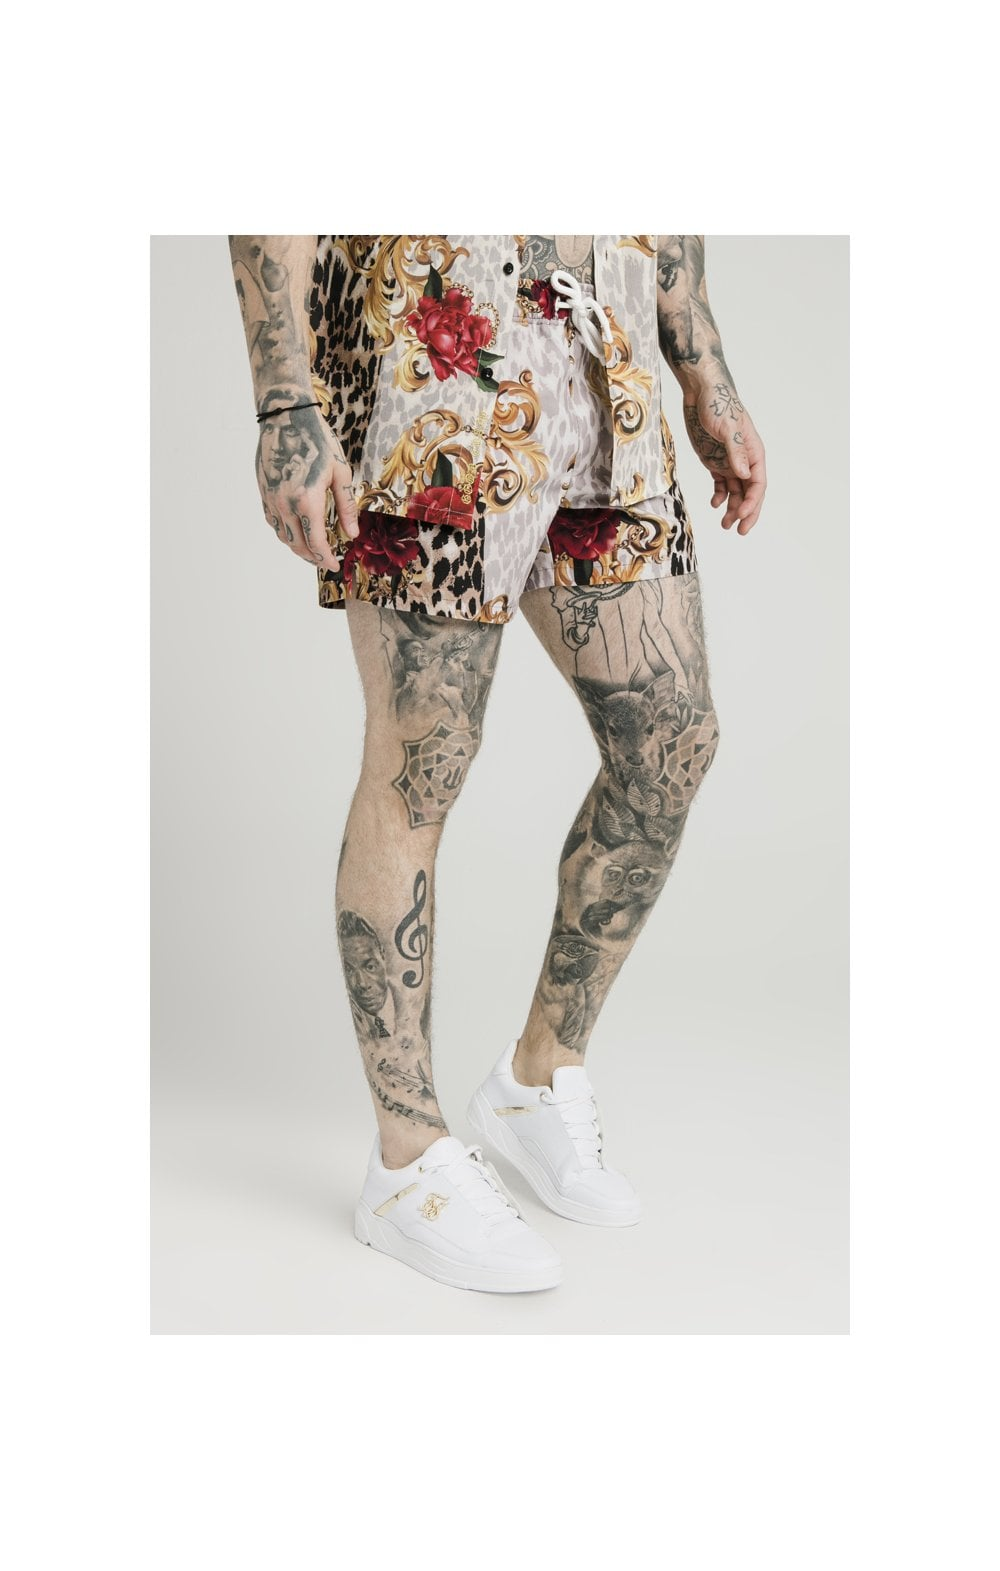 SikSilk x Dani Alves Swim Shorts - Floral Elegance